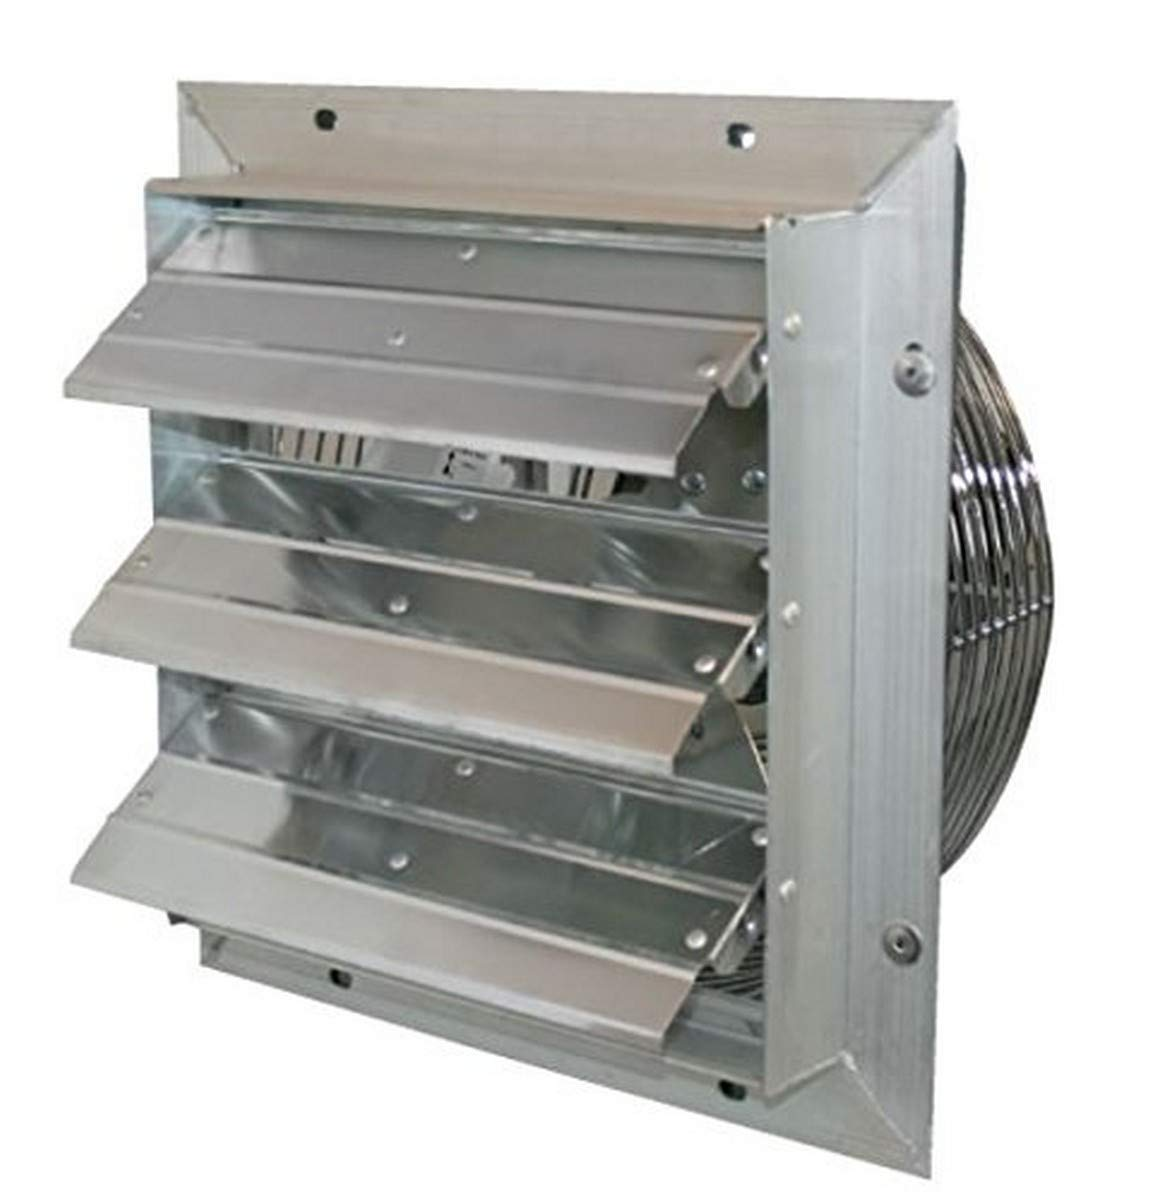 J D Manufacturing VES161C ES Aluminum Shutter Fan, 16 Size, 115V, 1 10 hp, 1 Phase, Variable Speed, 10 Cord